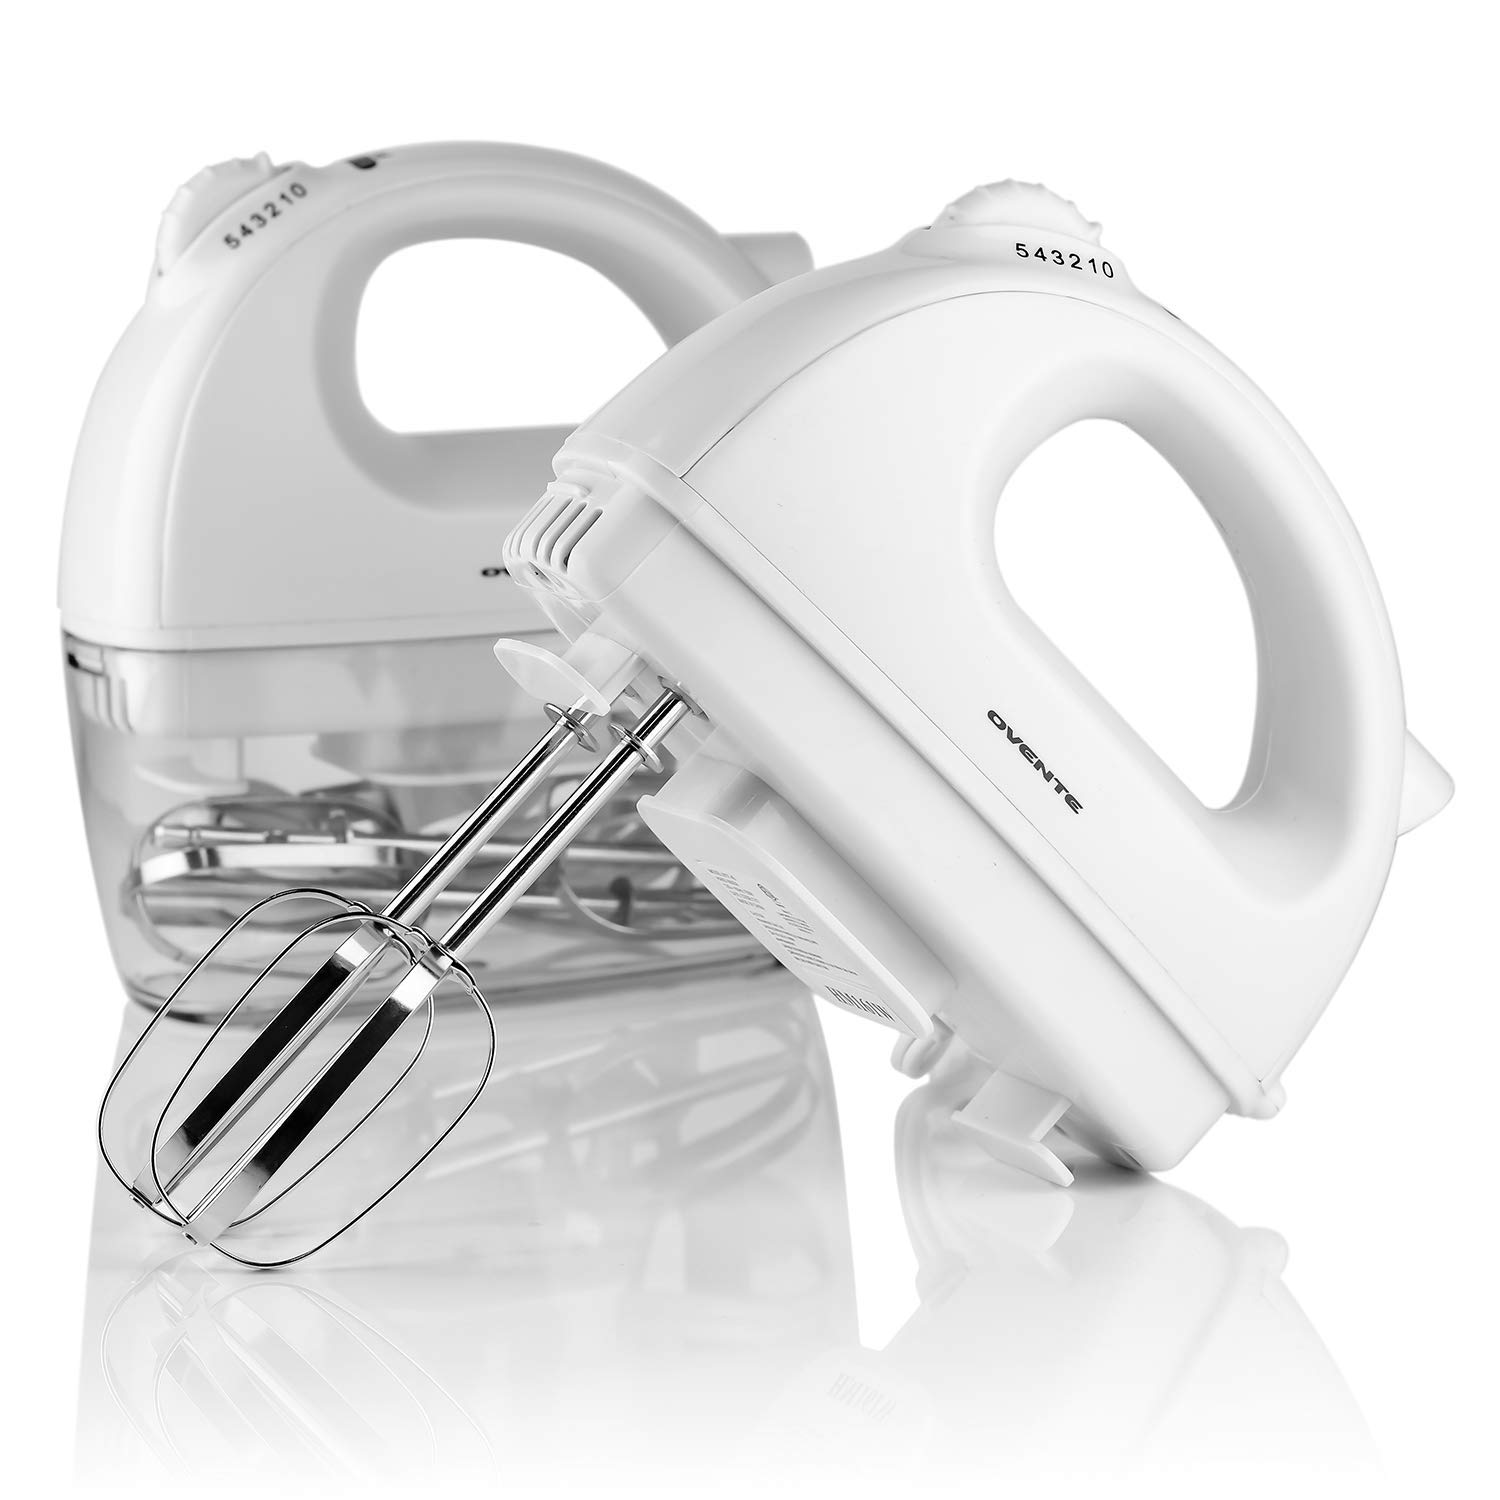 Ovente Electric Hand Mixer, 5 Mixing Speeds, 200W, 2 Stainless Steel Chrome Beaters & Free Snap-On Case, White (HM161W)